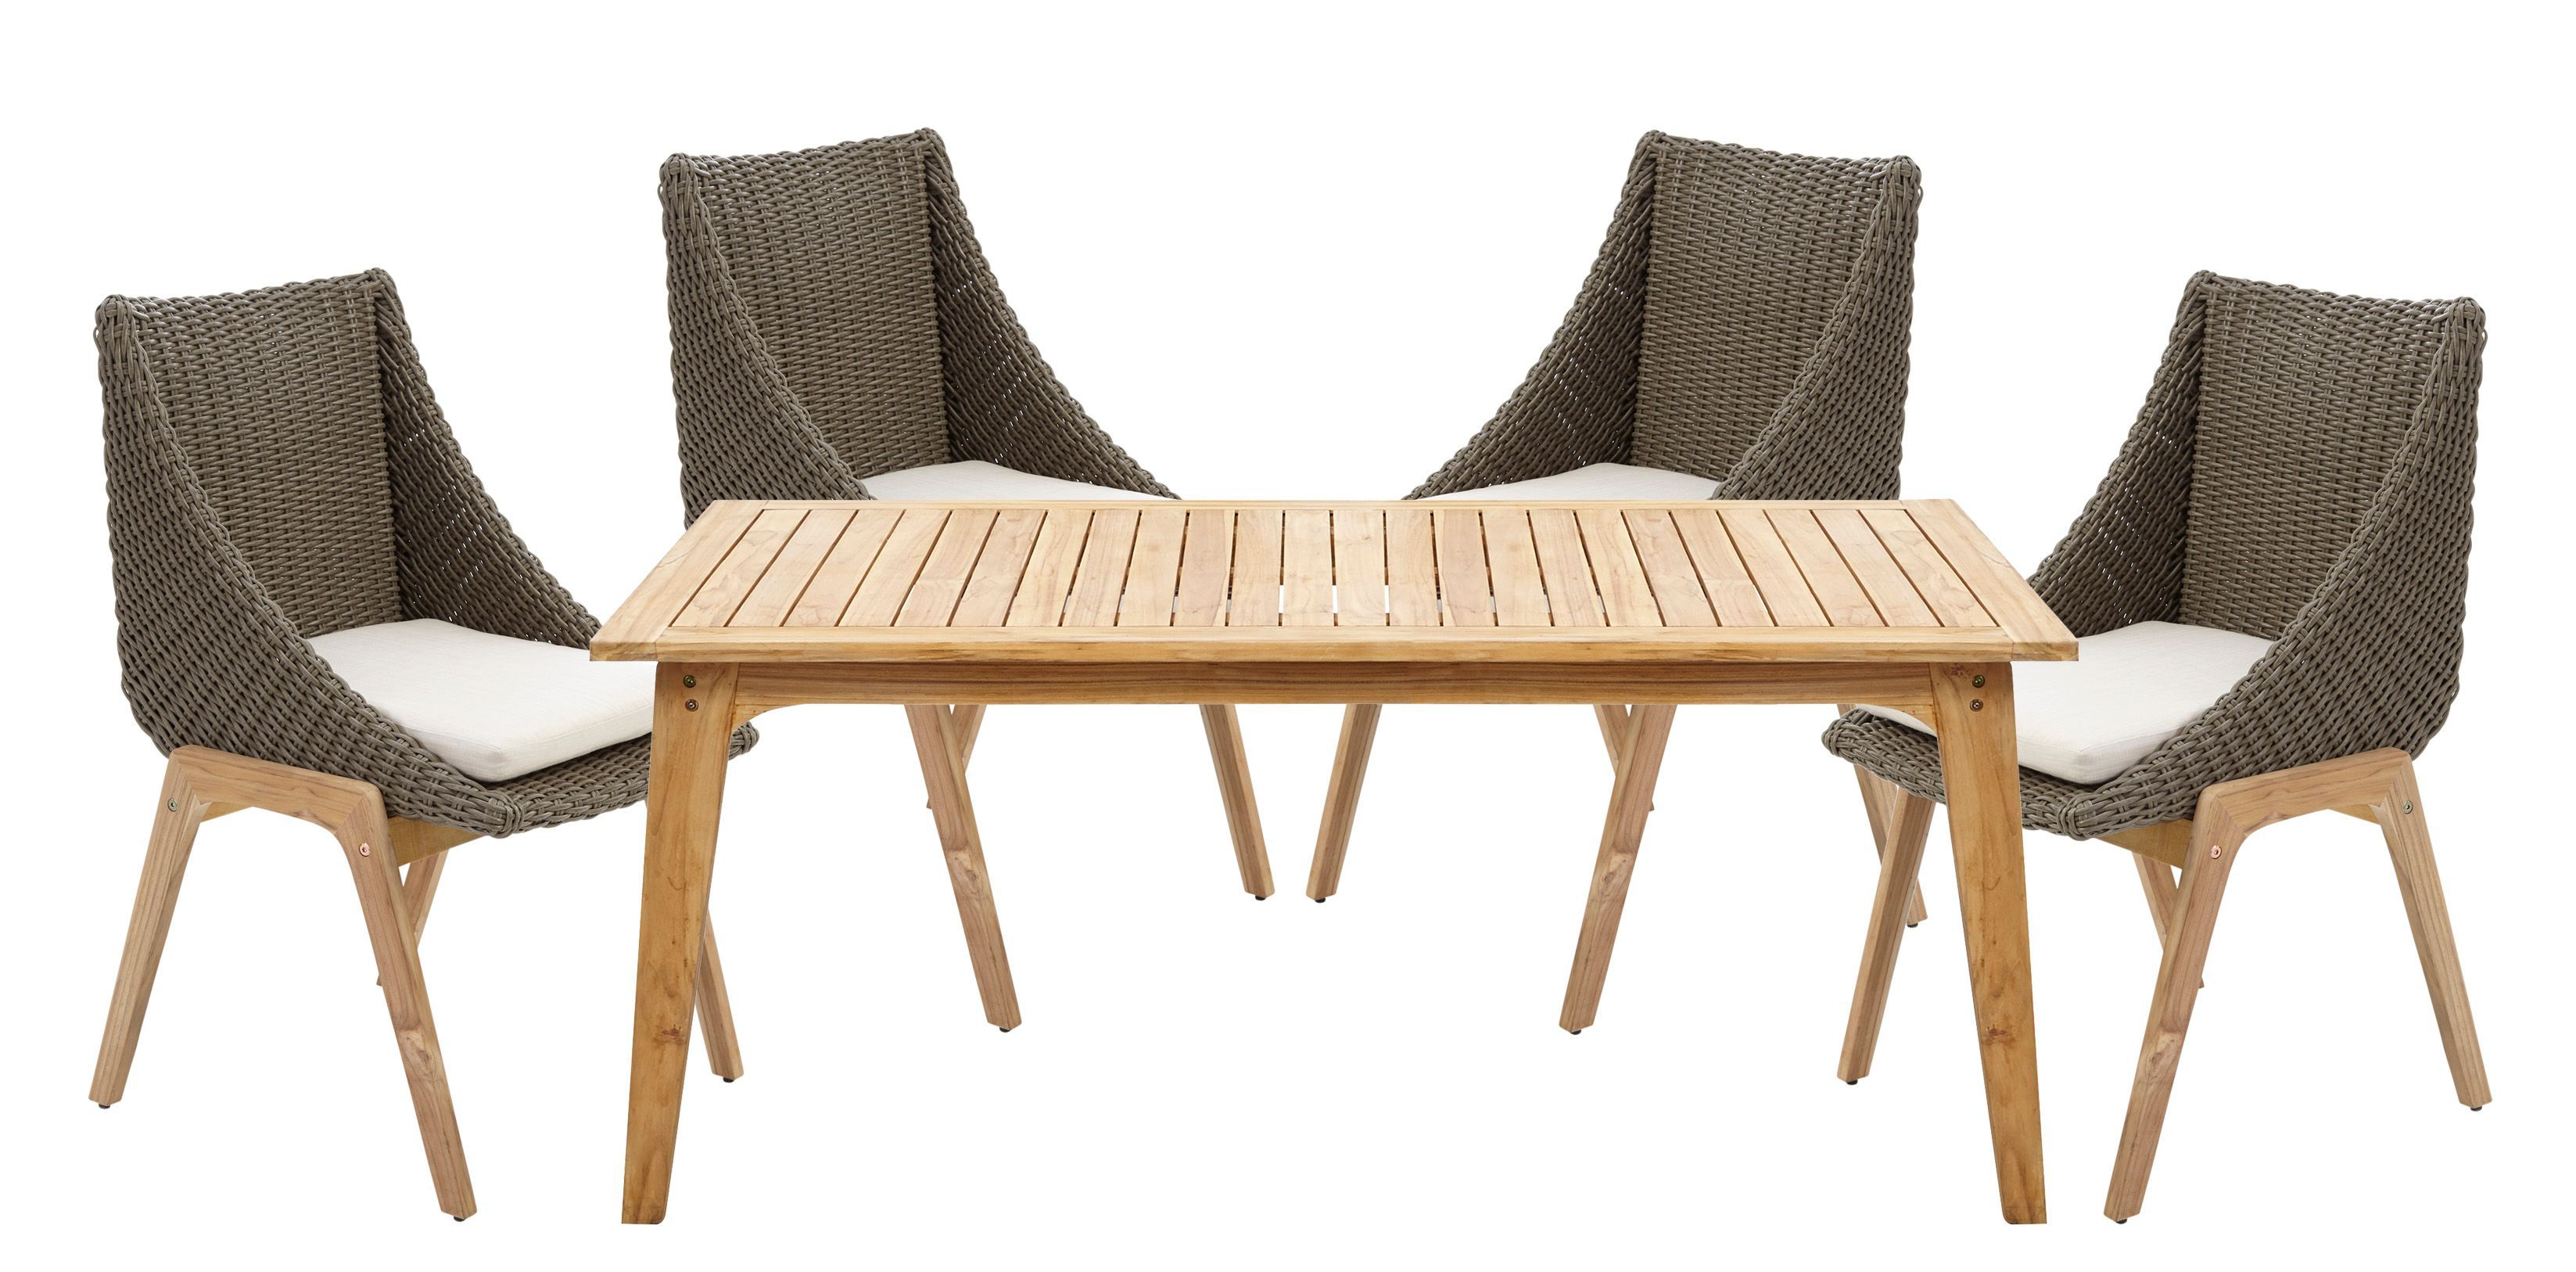 Rattan Garden Furniture 4 Seater retro rattan effect 4 seater dining set | departments | diy at b&q